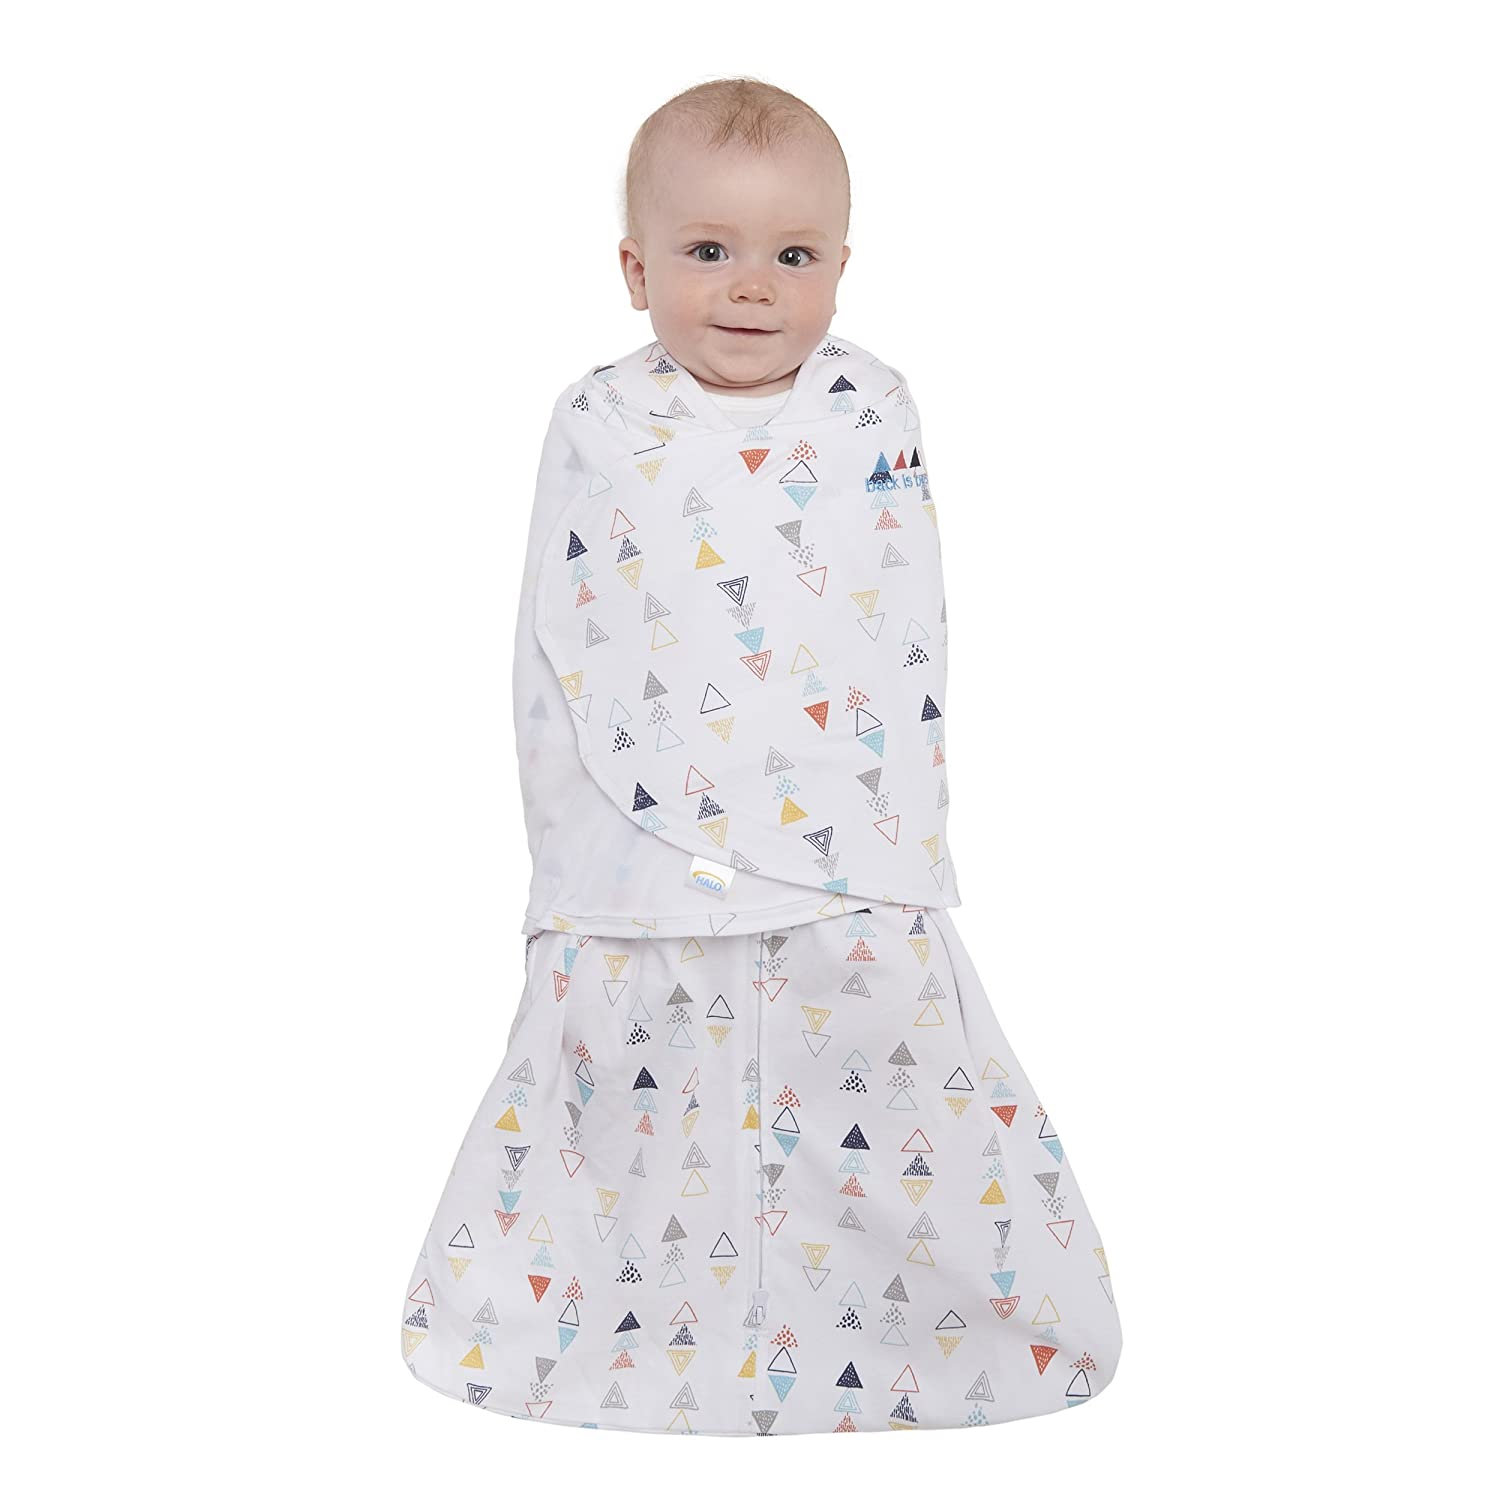 Halo Innovations Sleep Sack Cotton Swaddle, Multi Triangle, Small 12343